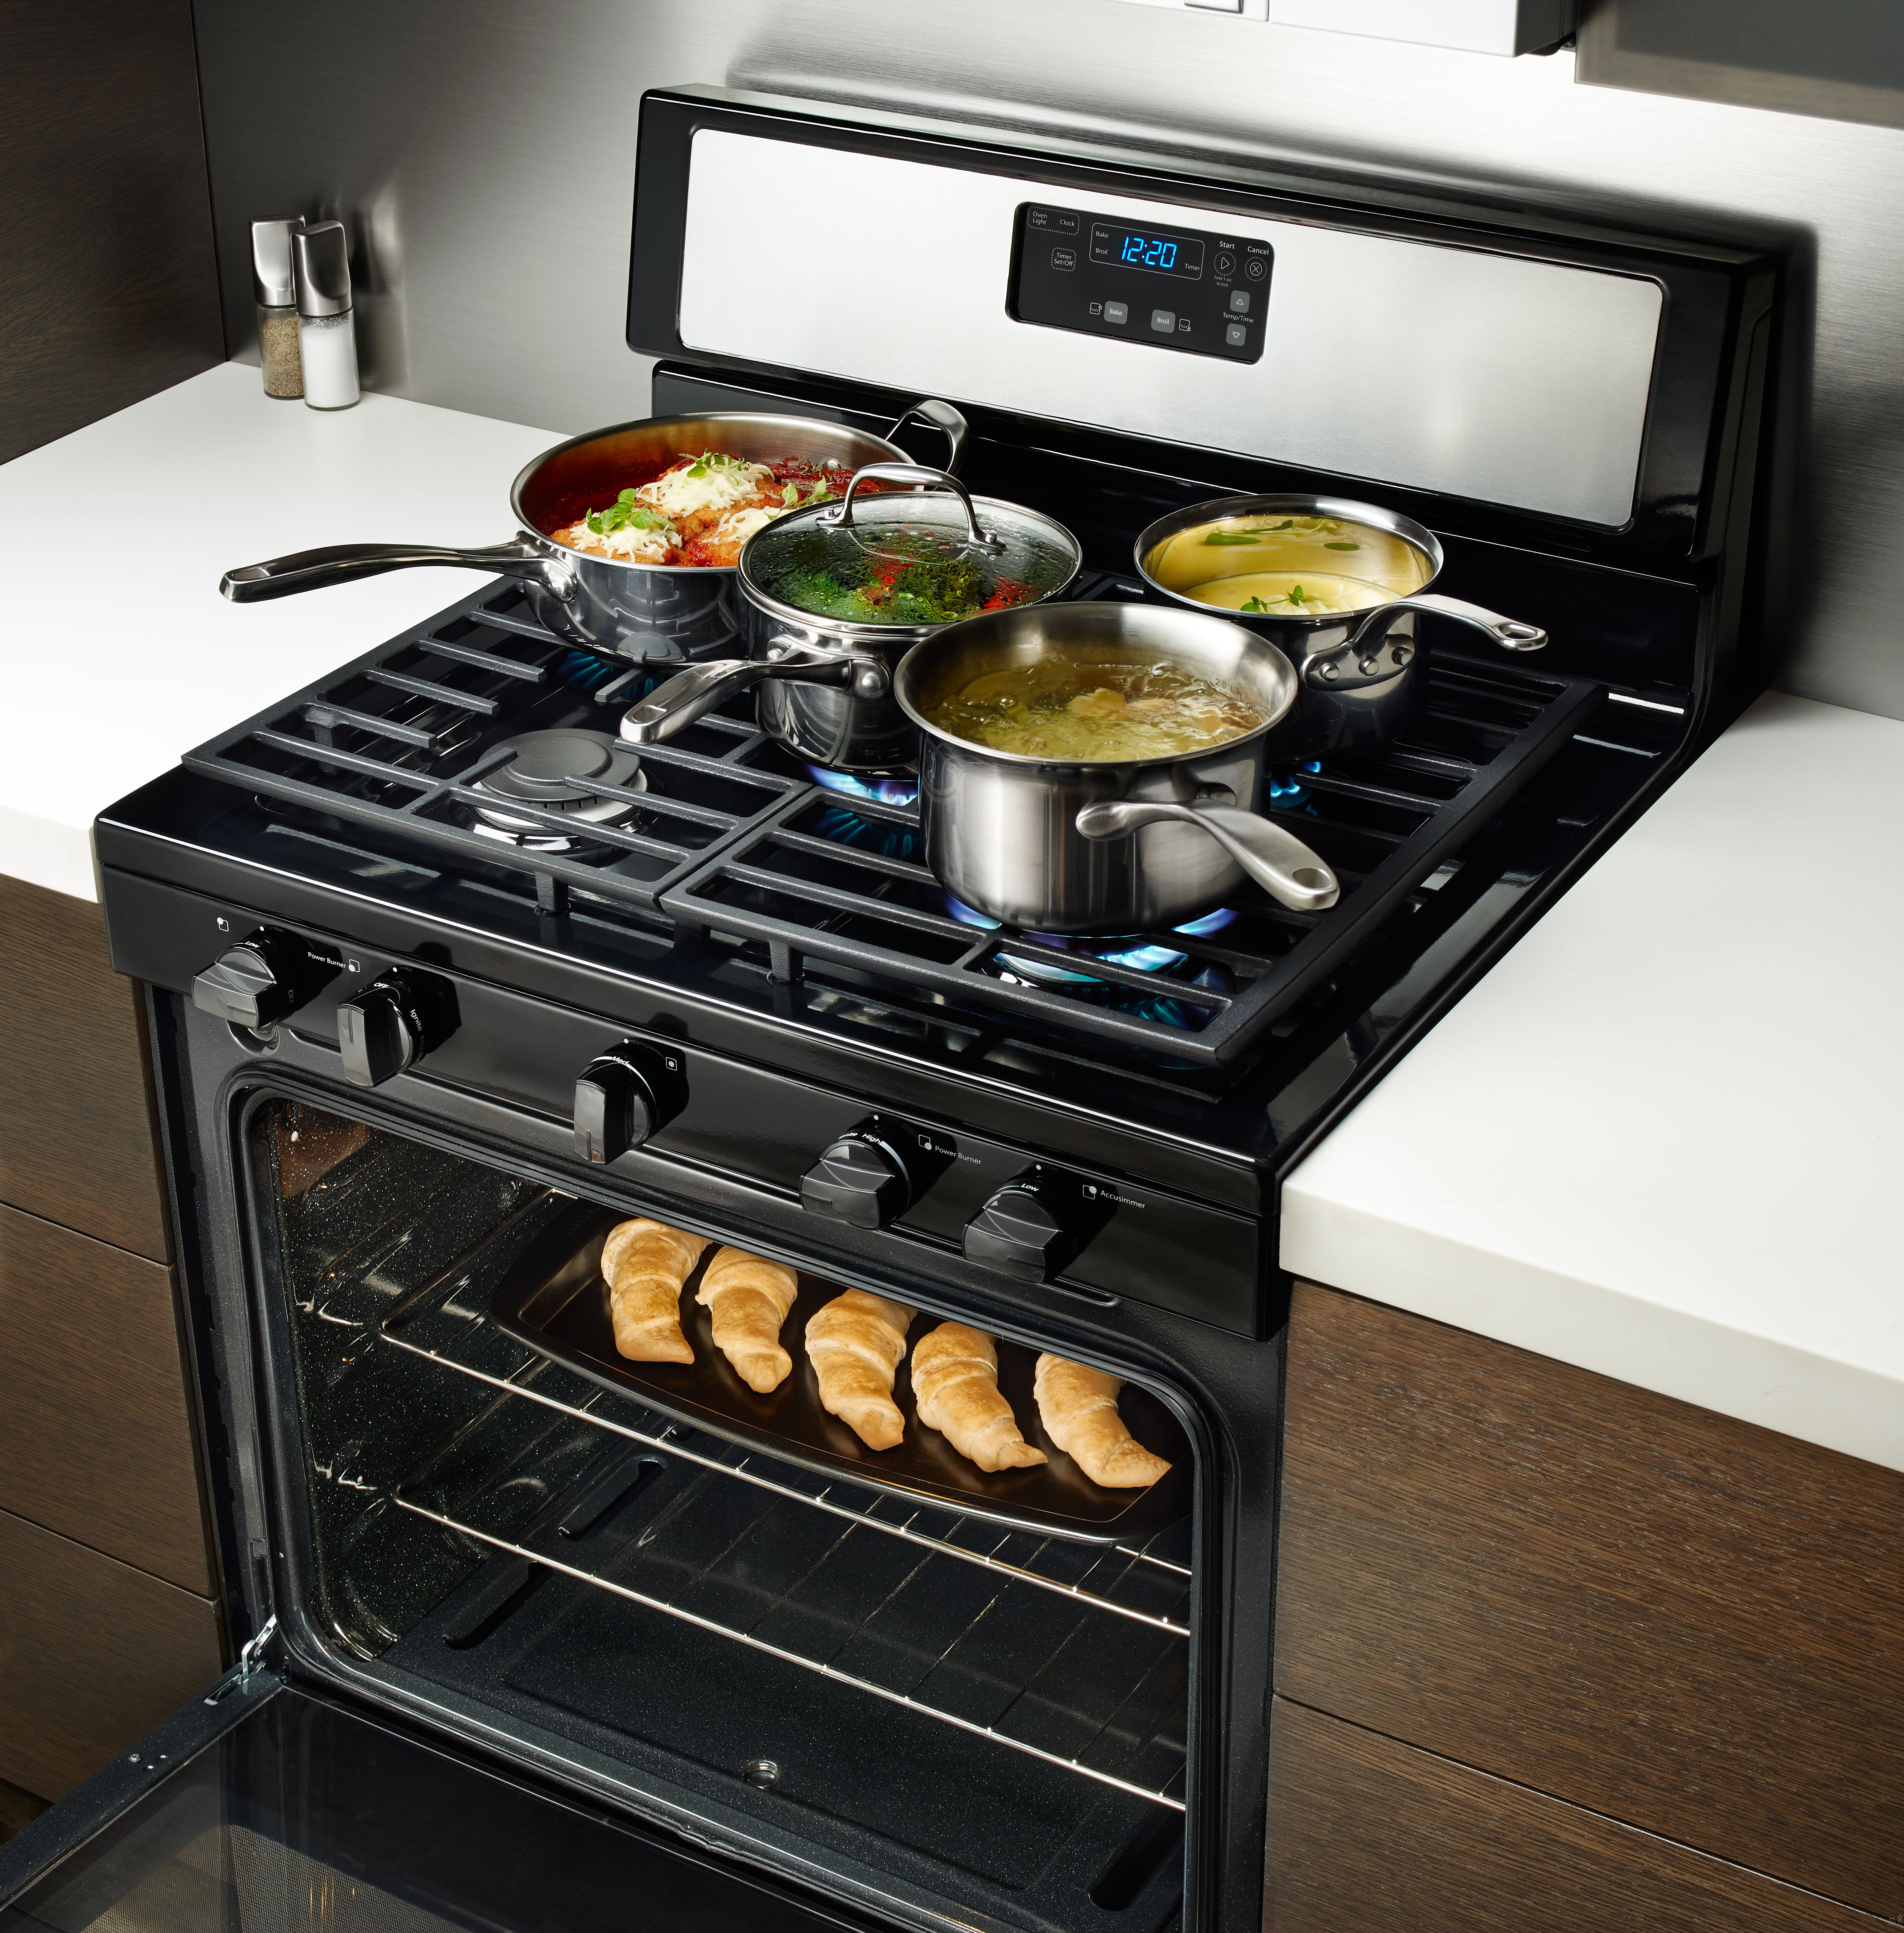 Whirlpool Wfg505m0bb 30 Quot Freestanding Gas Range With 5